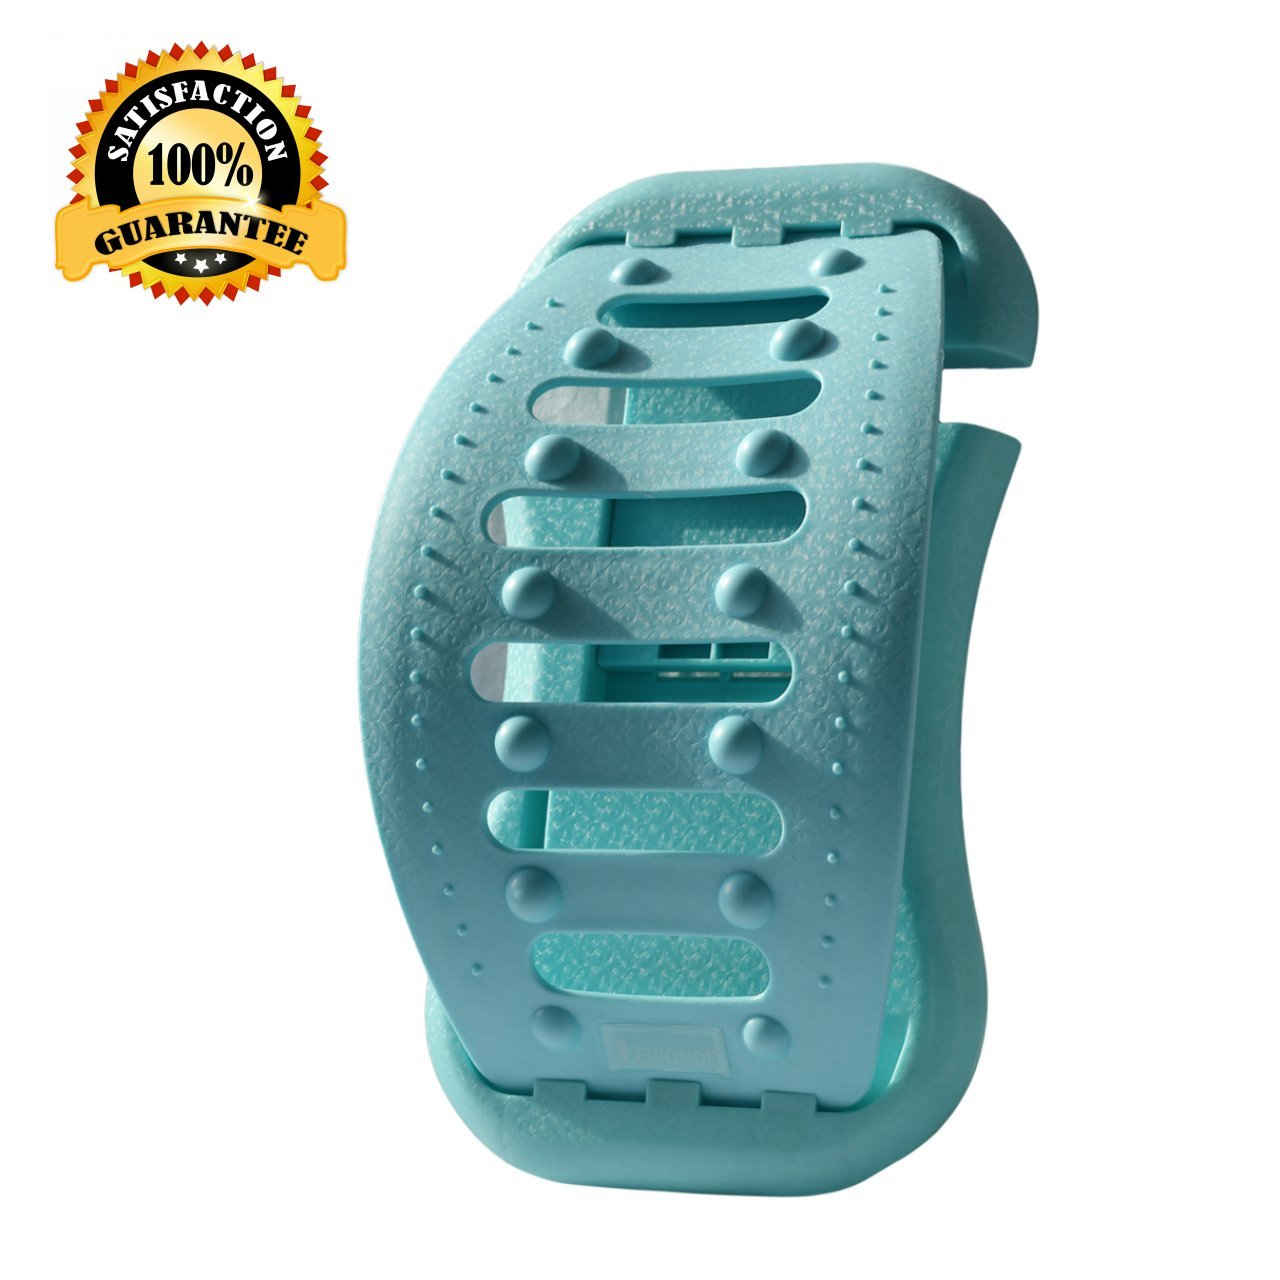 LeWonde Lower Back Pain Relief Back Stretcher, Lumbar Support, Neck Relaxer Pillow with 3 Ajustable Arch-Level